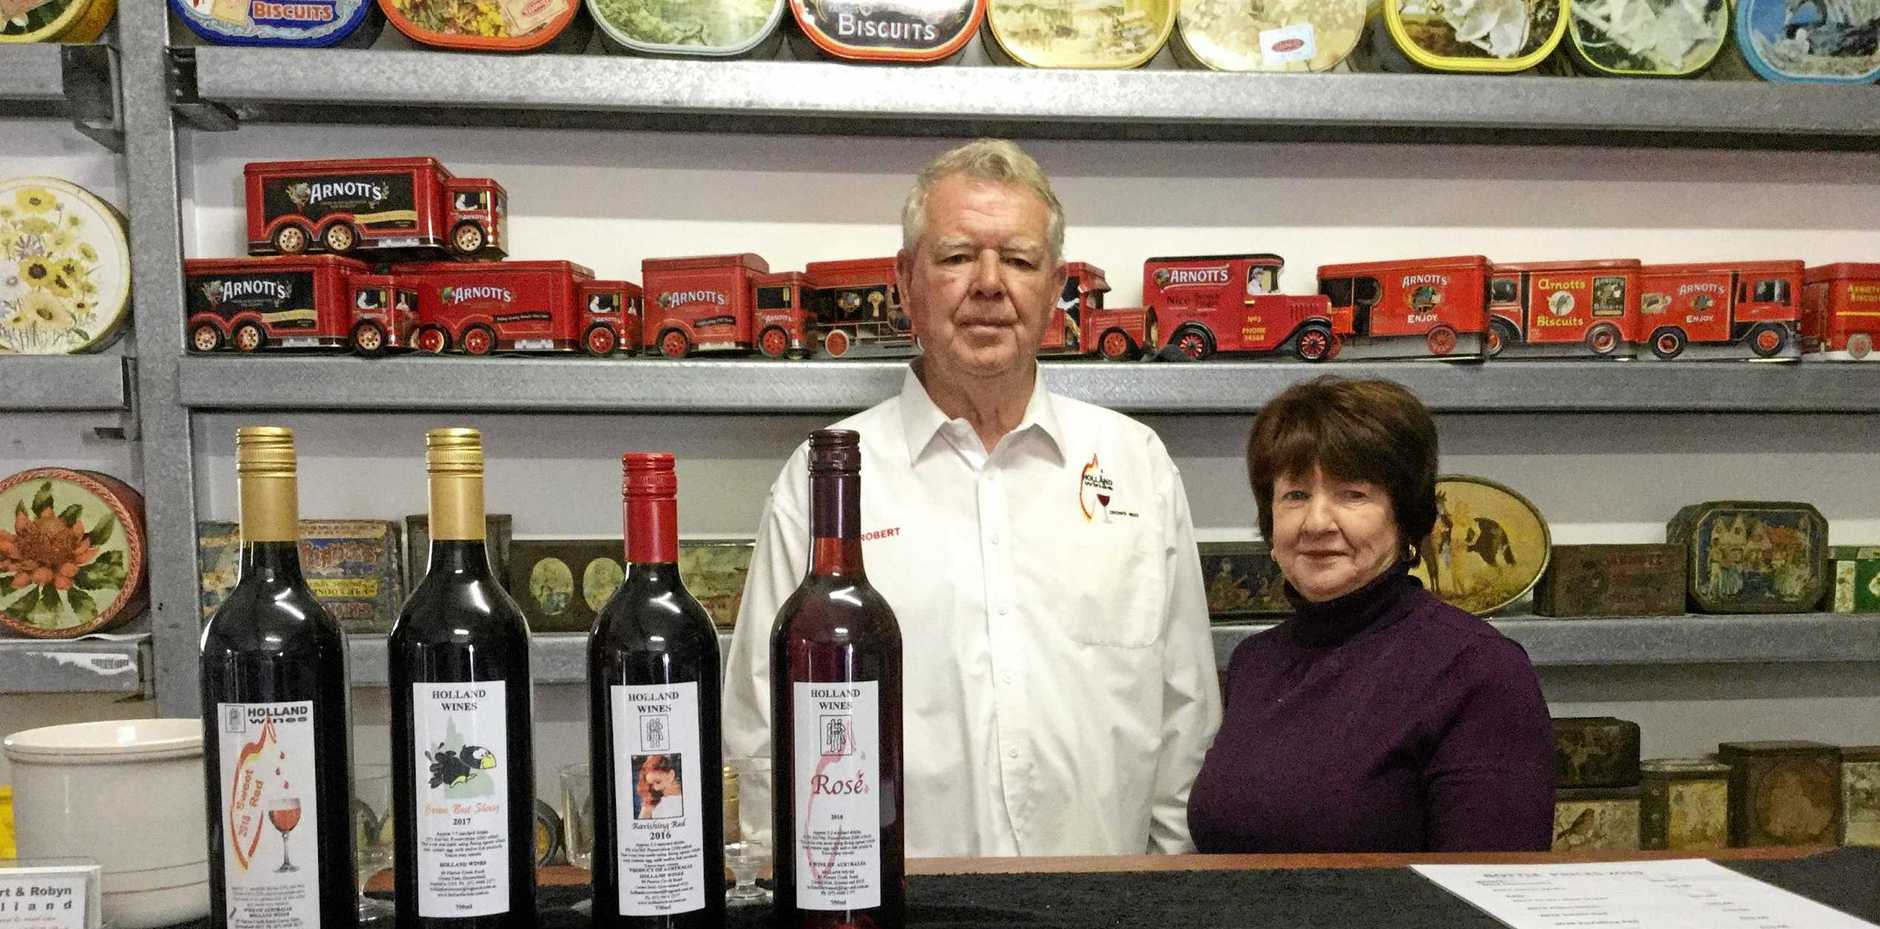 NEW CAREER: Bob and Robyn Holland's Crows Nest winery, started after retirement, offers both wine tastings and the largest collection of Arnott's biscuit tins on public view.